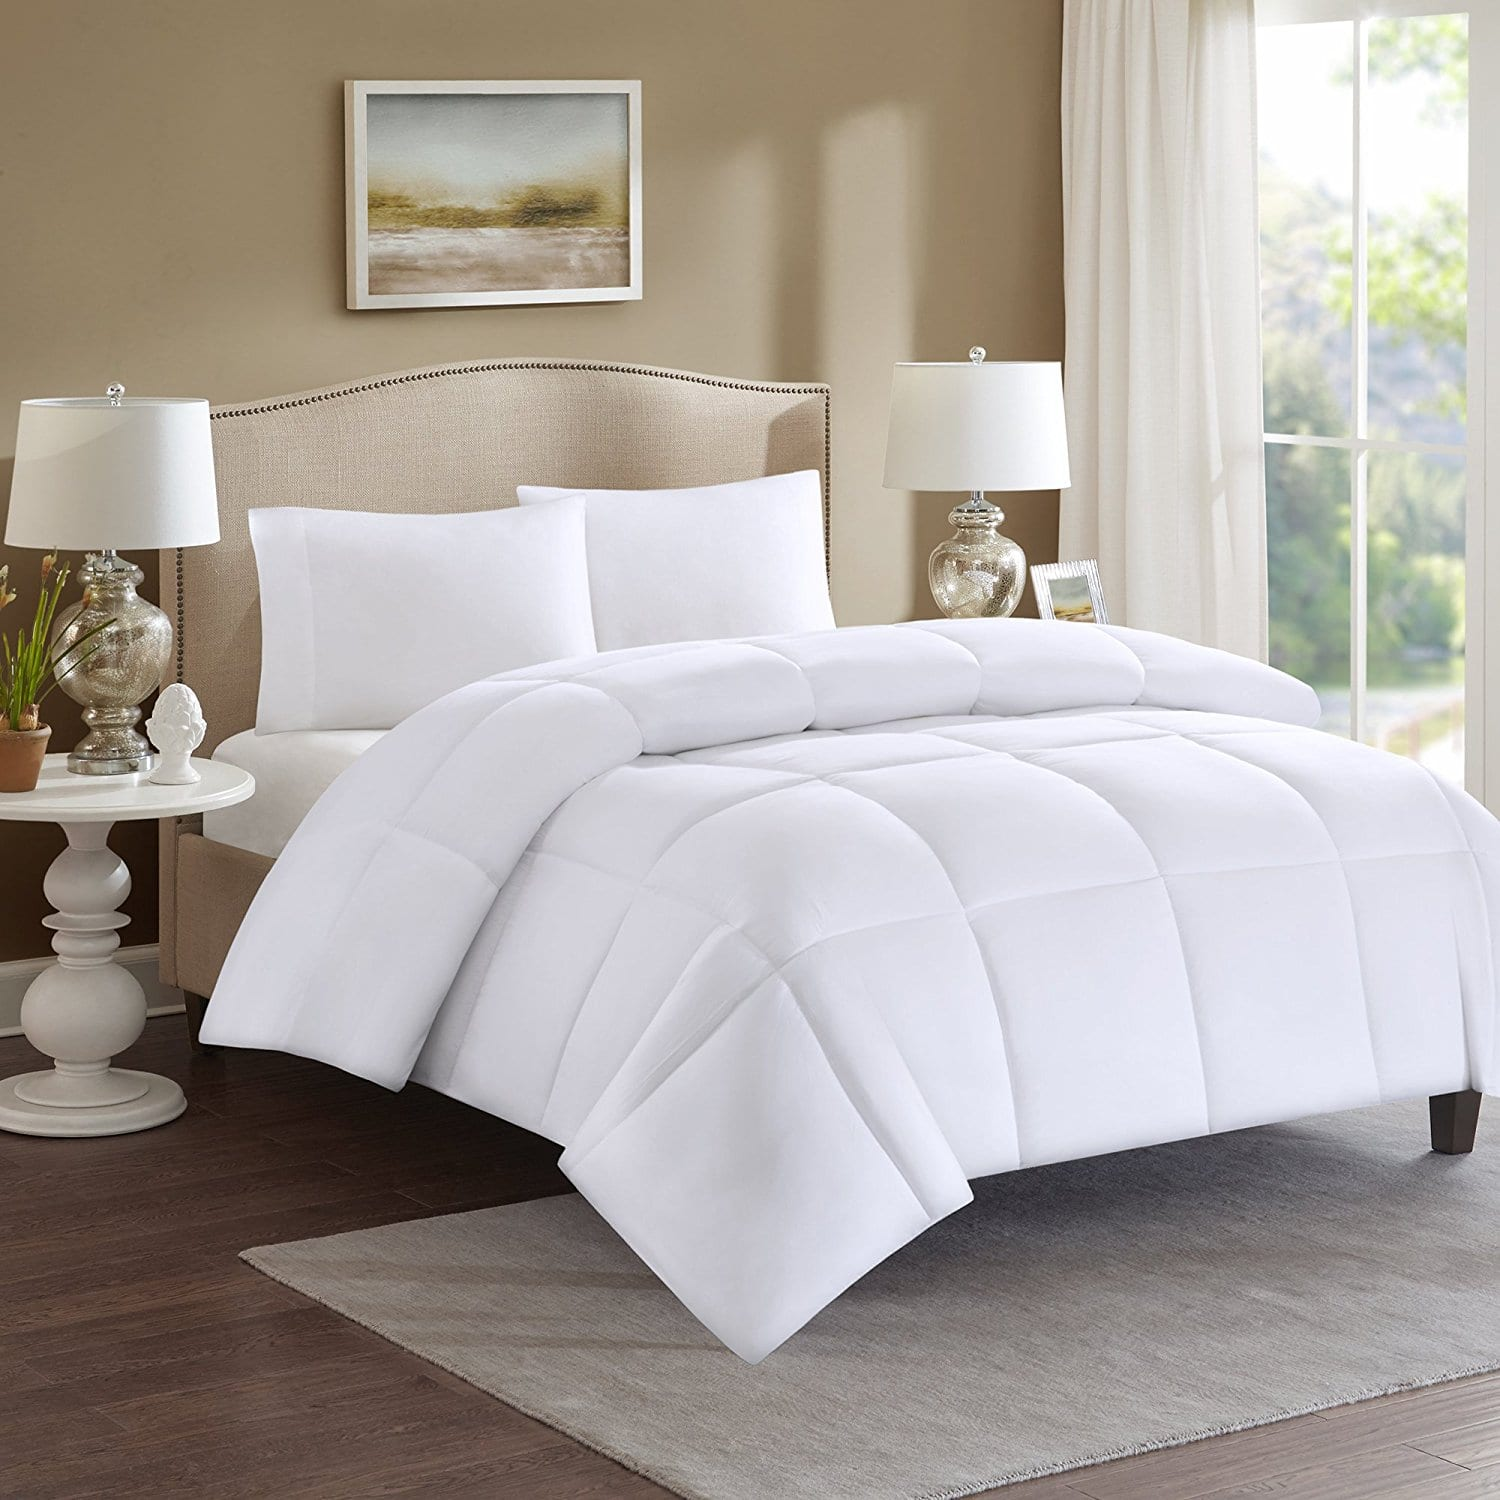 Comfort Spaces - Plush Microfiber Down Alternative Comforter and Sheet Sets From $13.19